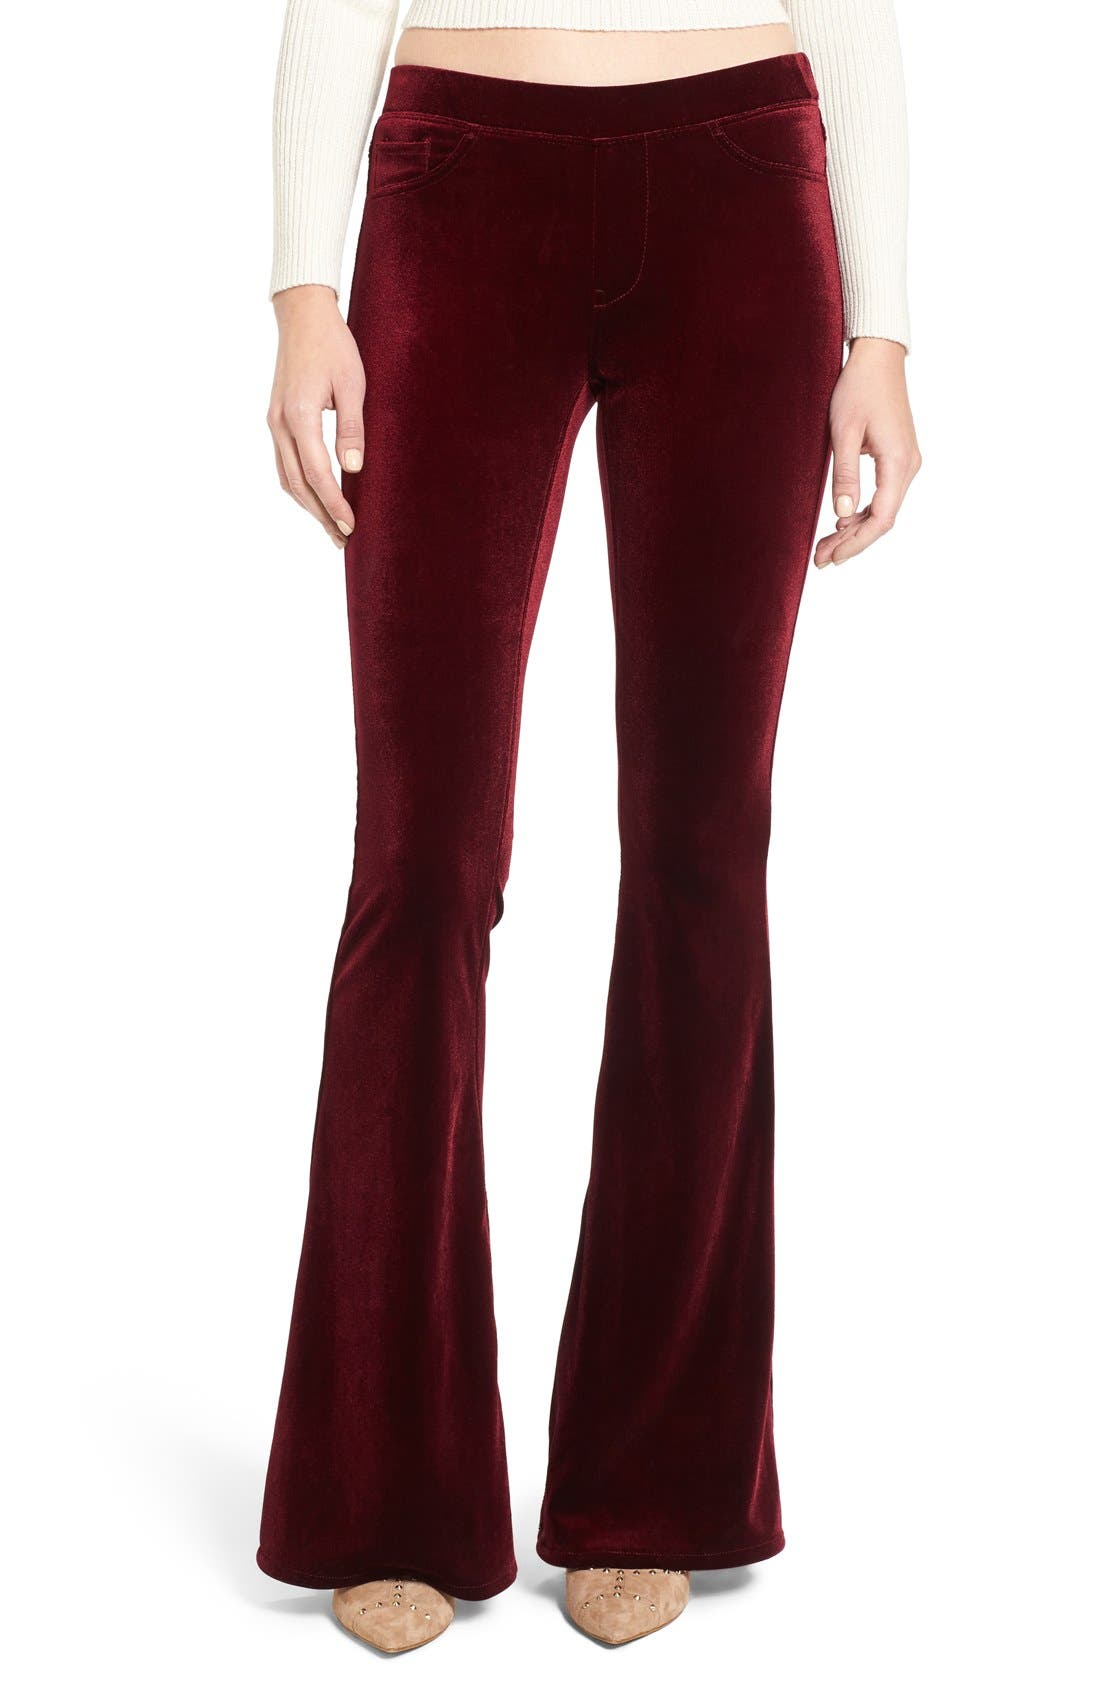 Alternate Image 1 Selected - BLANKNYC Velvet Flare Pants